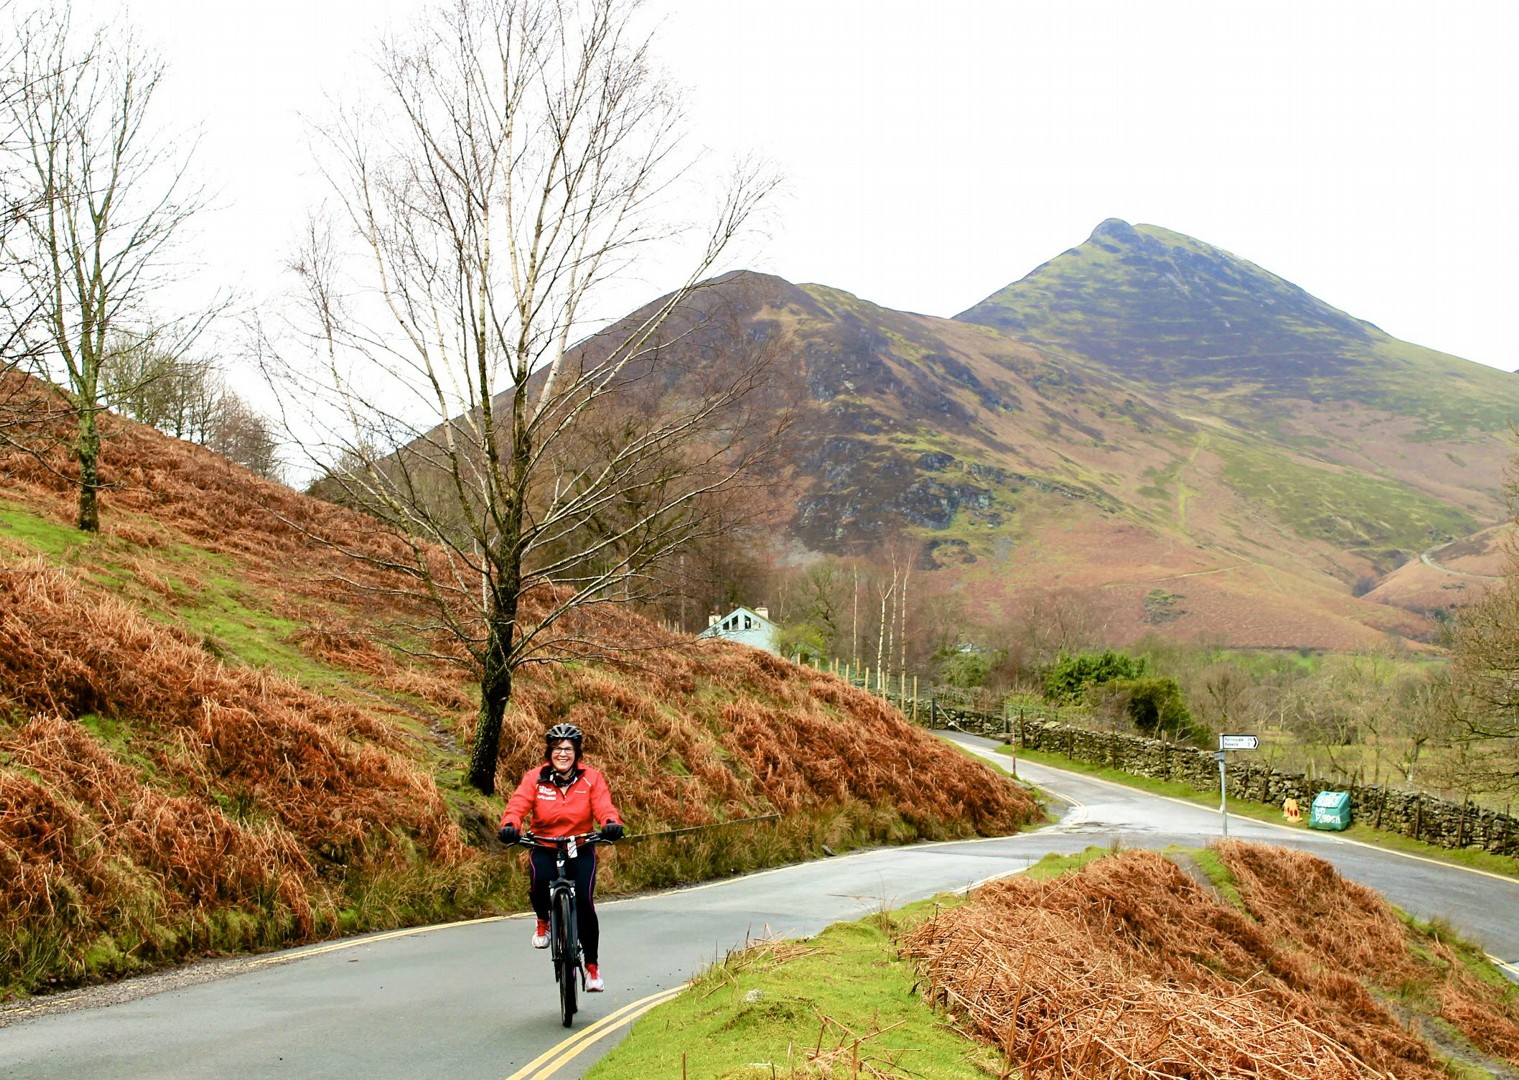 Lake District-Derwent-Water-Self-Guided-Leisure-Cycling-Holiday.jpg - UK - Lake District - Derwent Water - Guided Leisure Cycling Holiday - Leisure Cycling